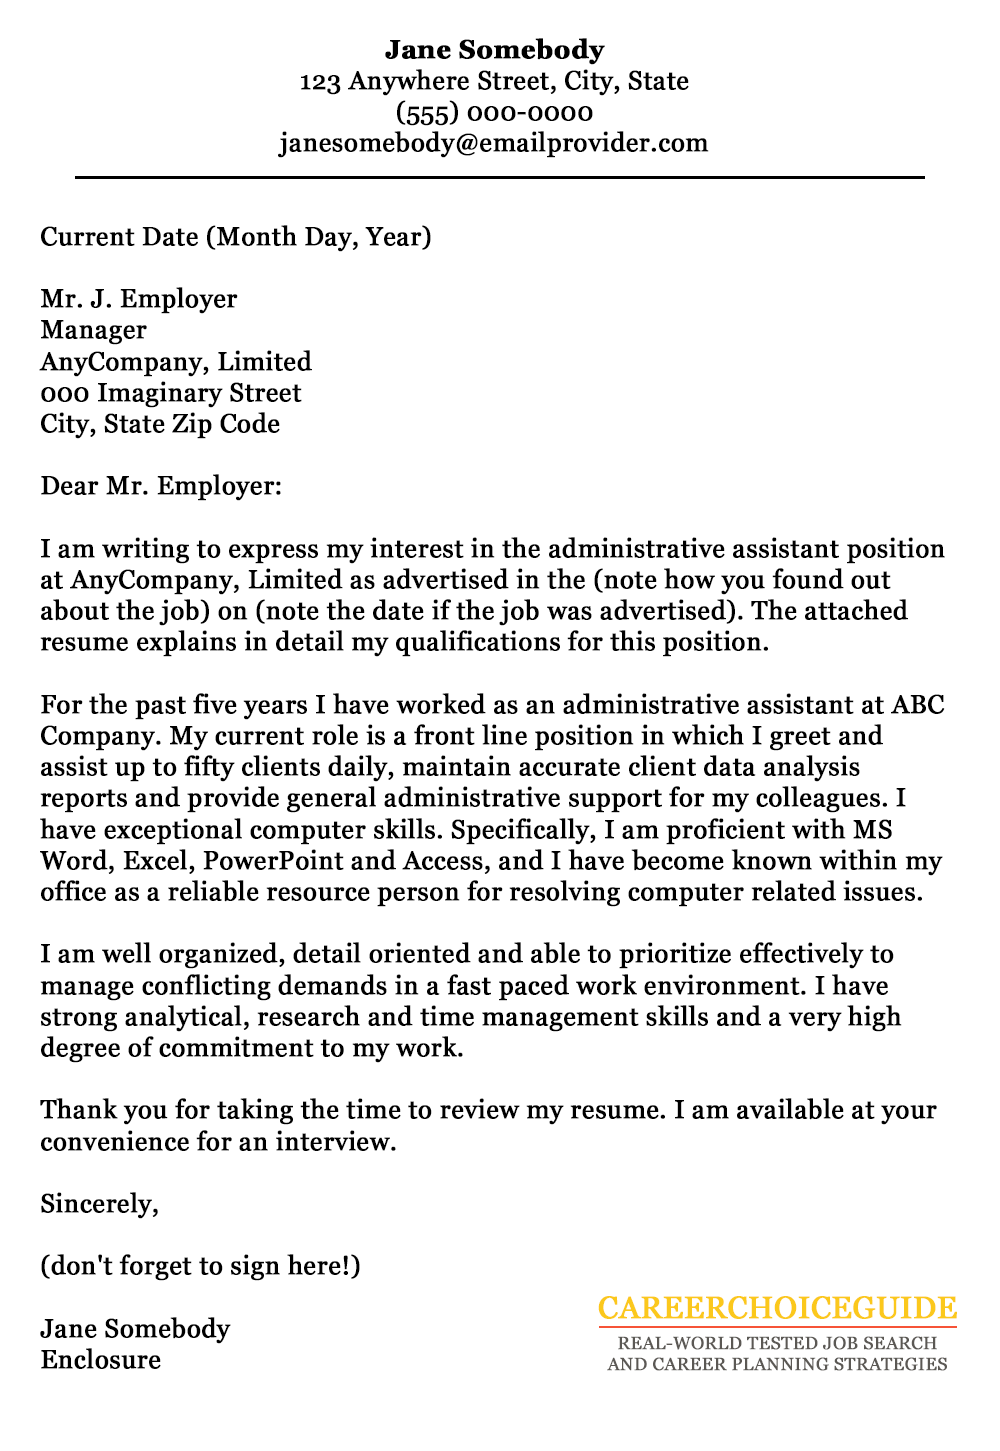 cover letter with attached resume sample